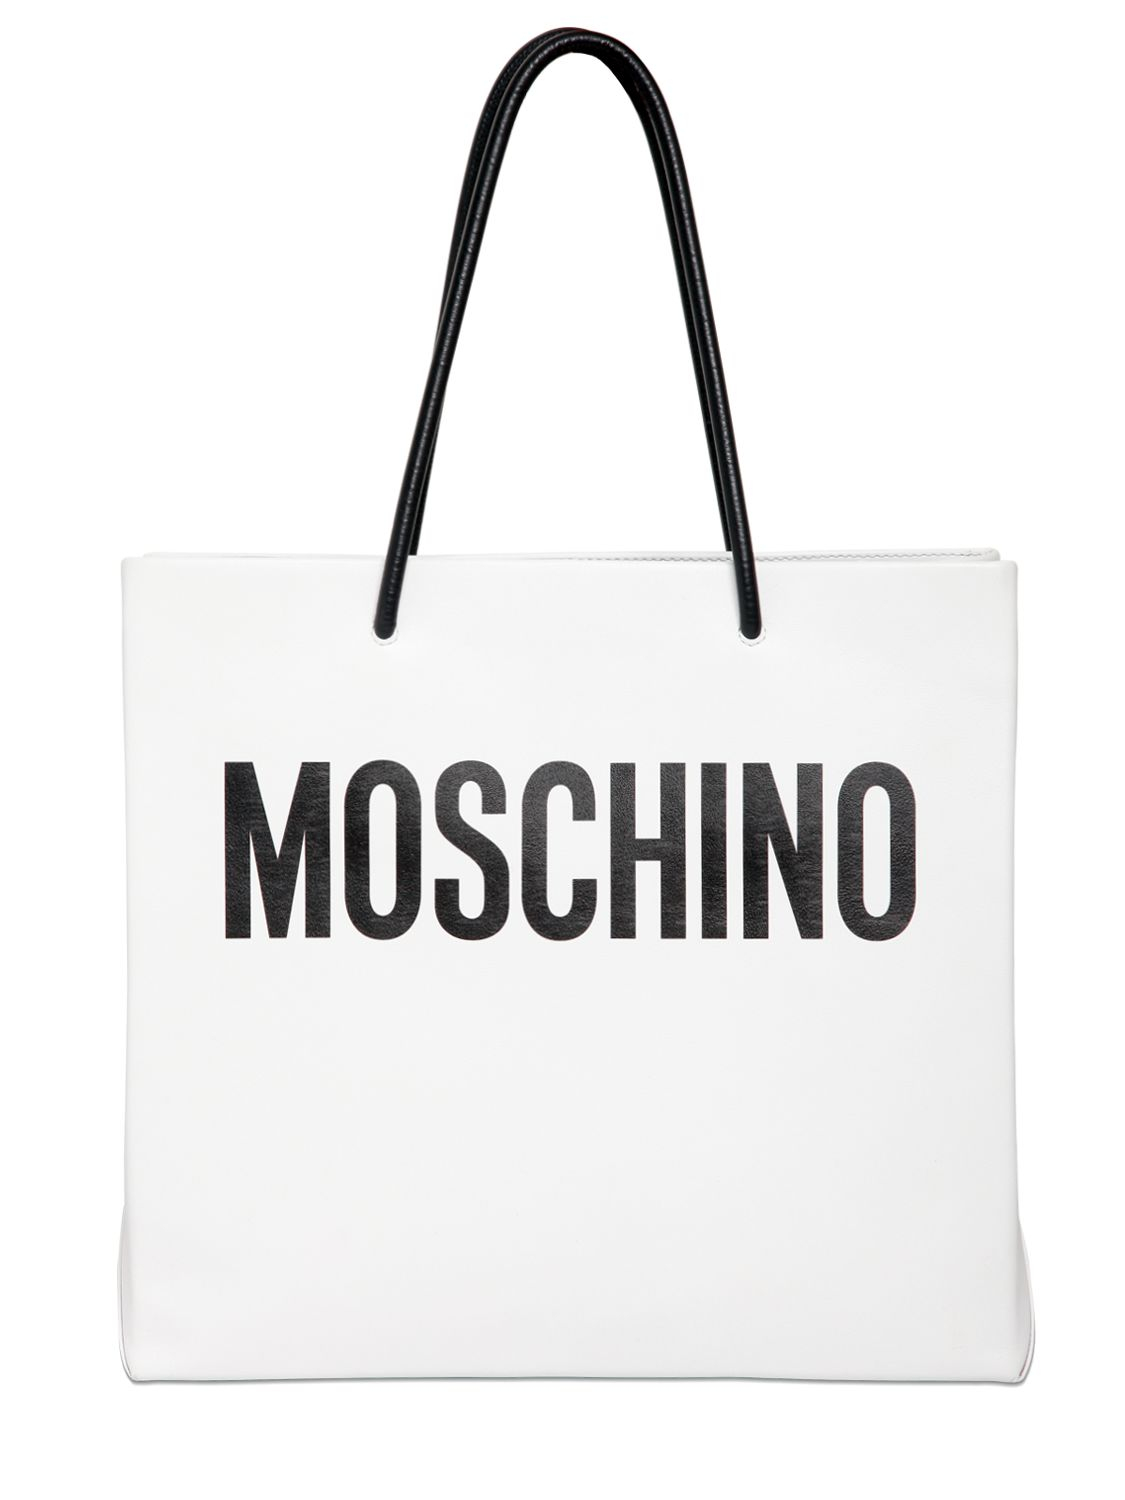 Moschino Moshino Shopping Leather Tote Bag In White Lyst